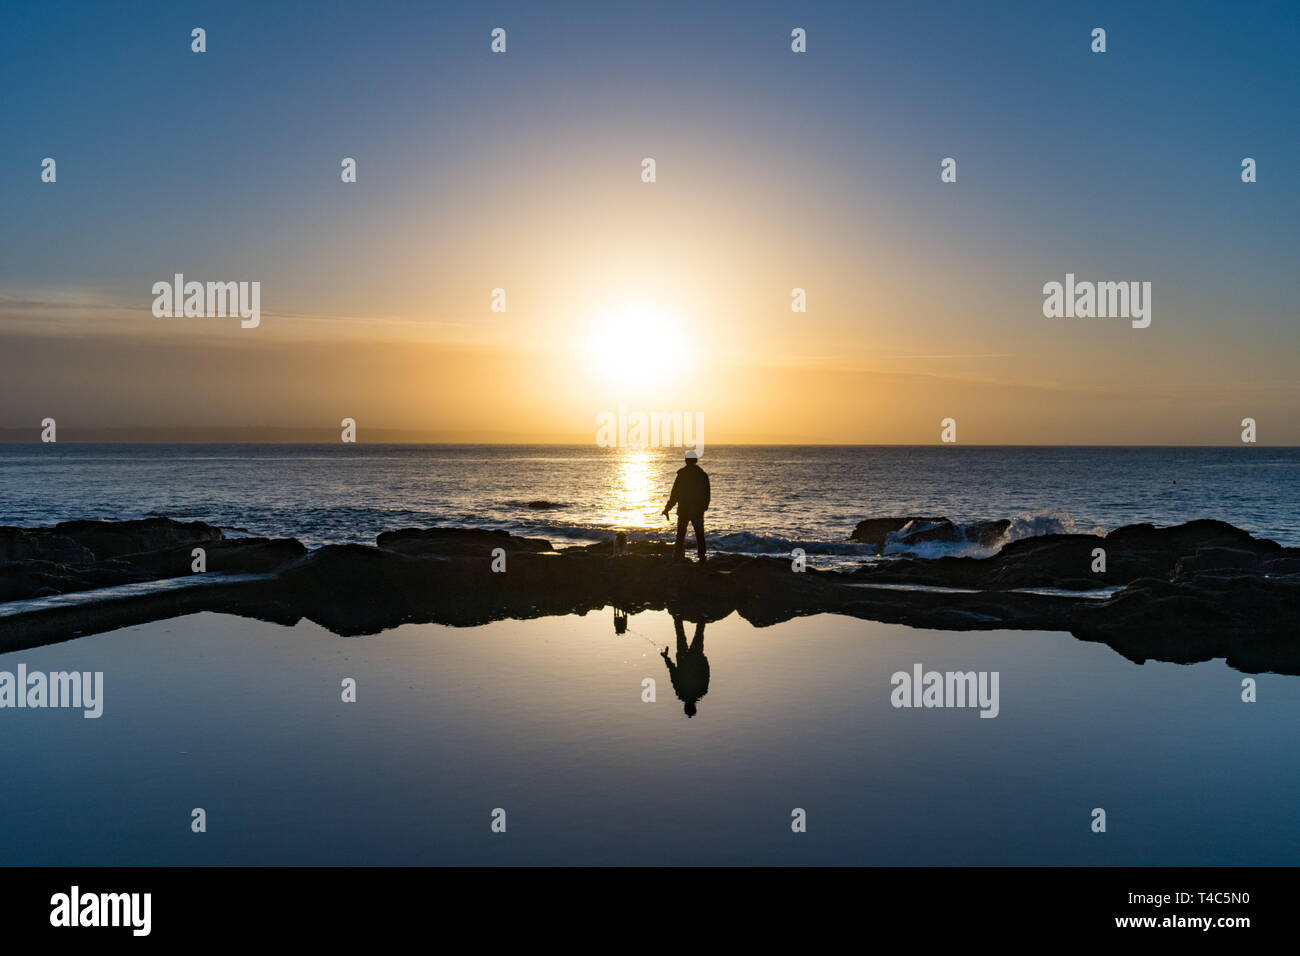 Mousehole, Cornwall, UK. 16th Apr, 2019. UK Weather. After 3 days of gale force winds and heavy rain, the weather has swung round this morning ahead of the Easter weekend. It was calm and mild at sunrise with the promise of a hot day ahead. Credit: Simon Maycock/Alamy Live News - Stock Image